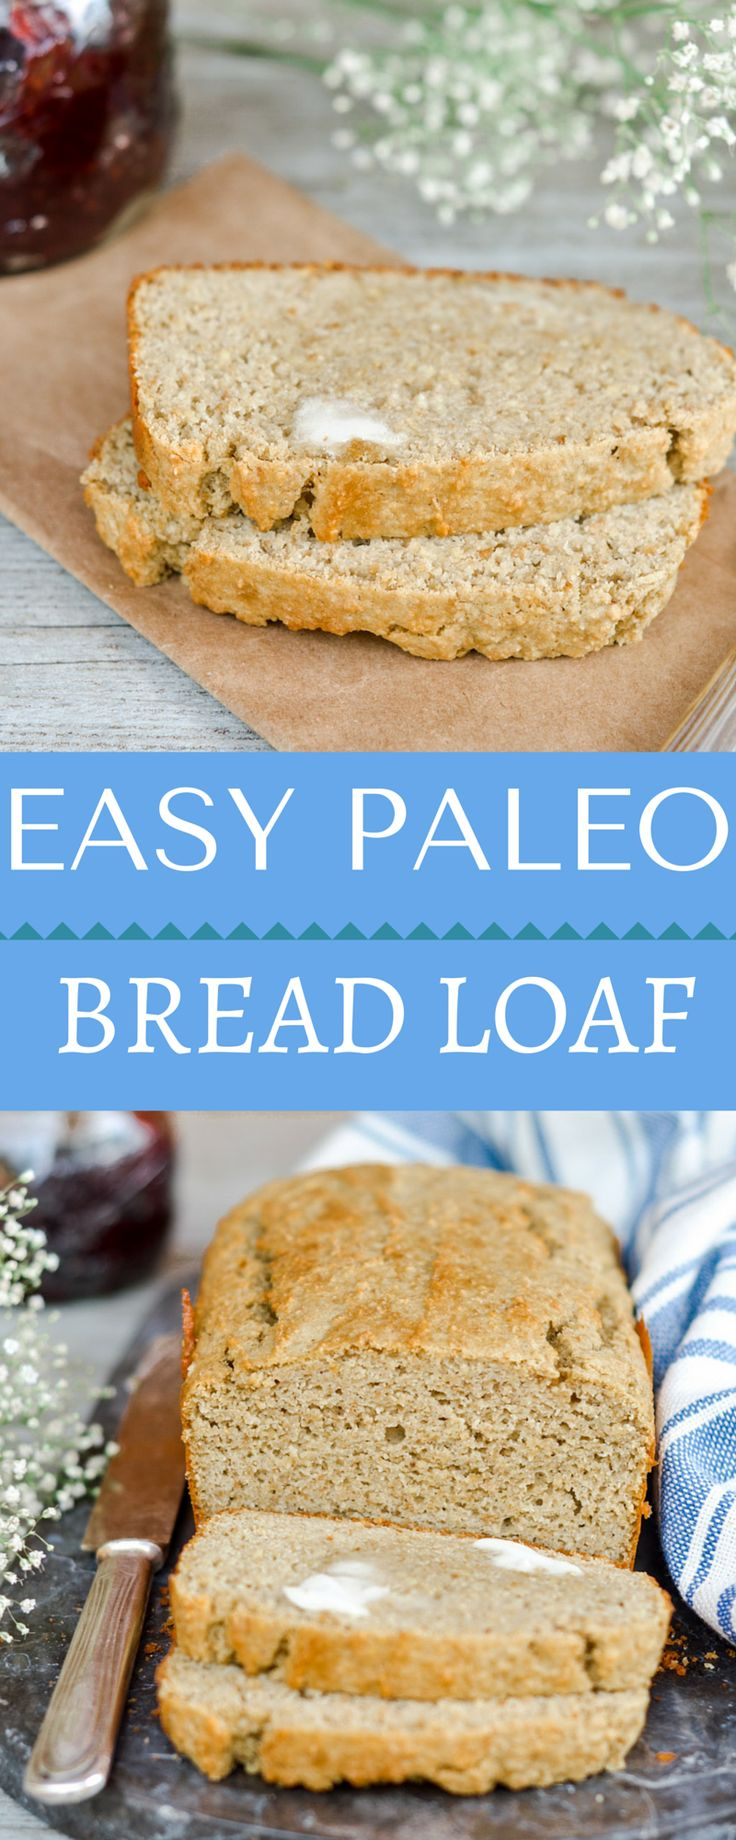 Paleo bread made with soft plantains, giving this bread a subtle exotic flavor. Gluten free and healthy for you, eating low carb has never been easier with this easy to make bread loaf. Throw everything into the blender and then cook it up!